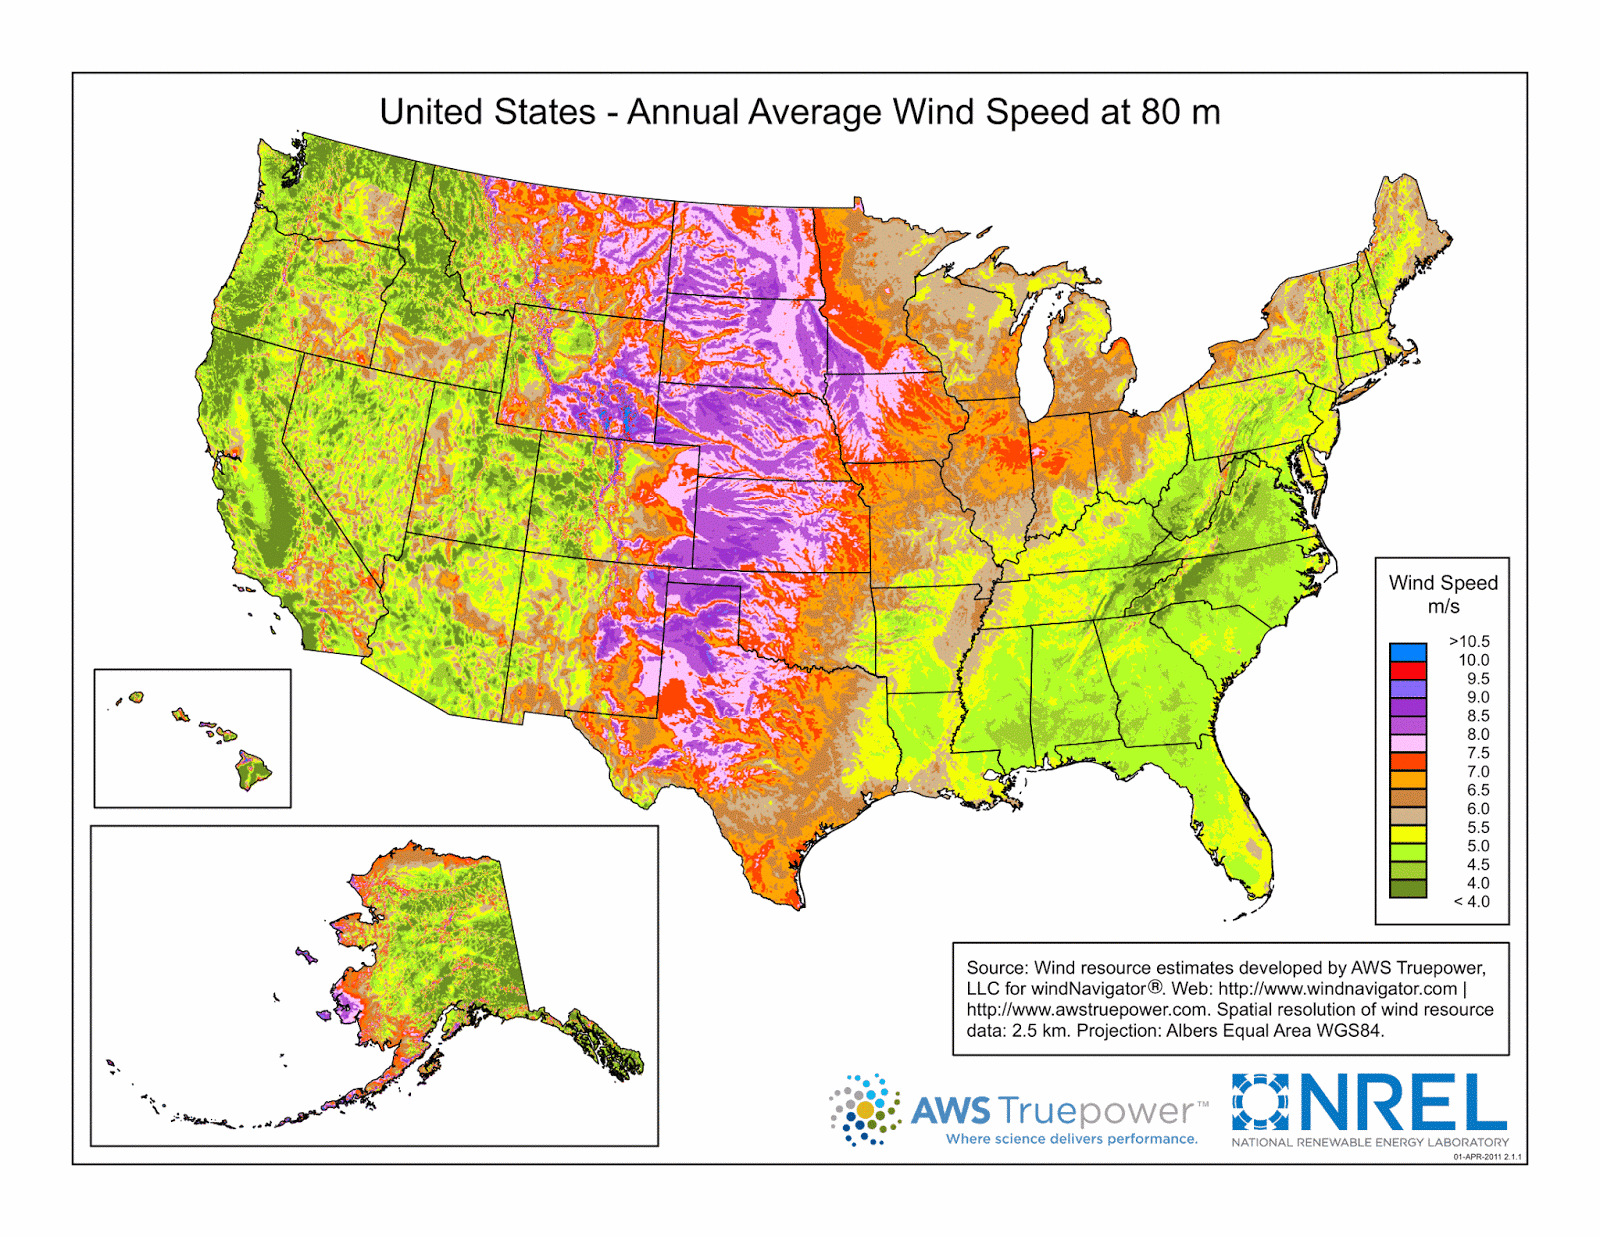 United States: Annual Average Wind Speed